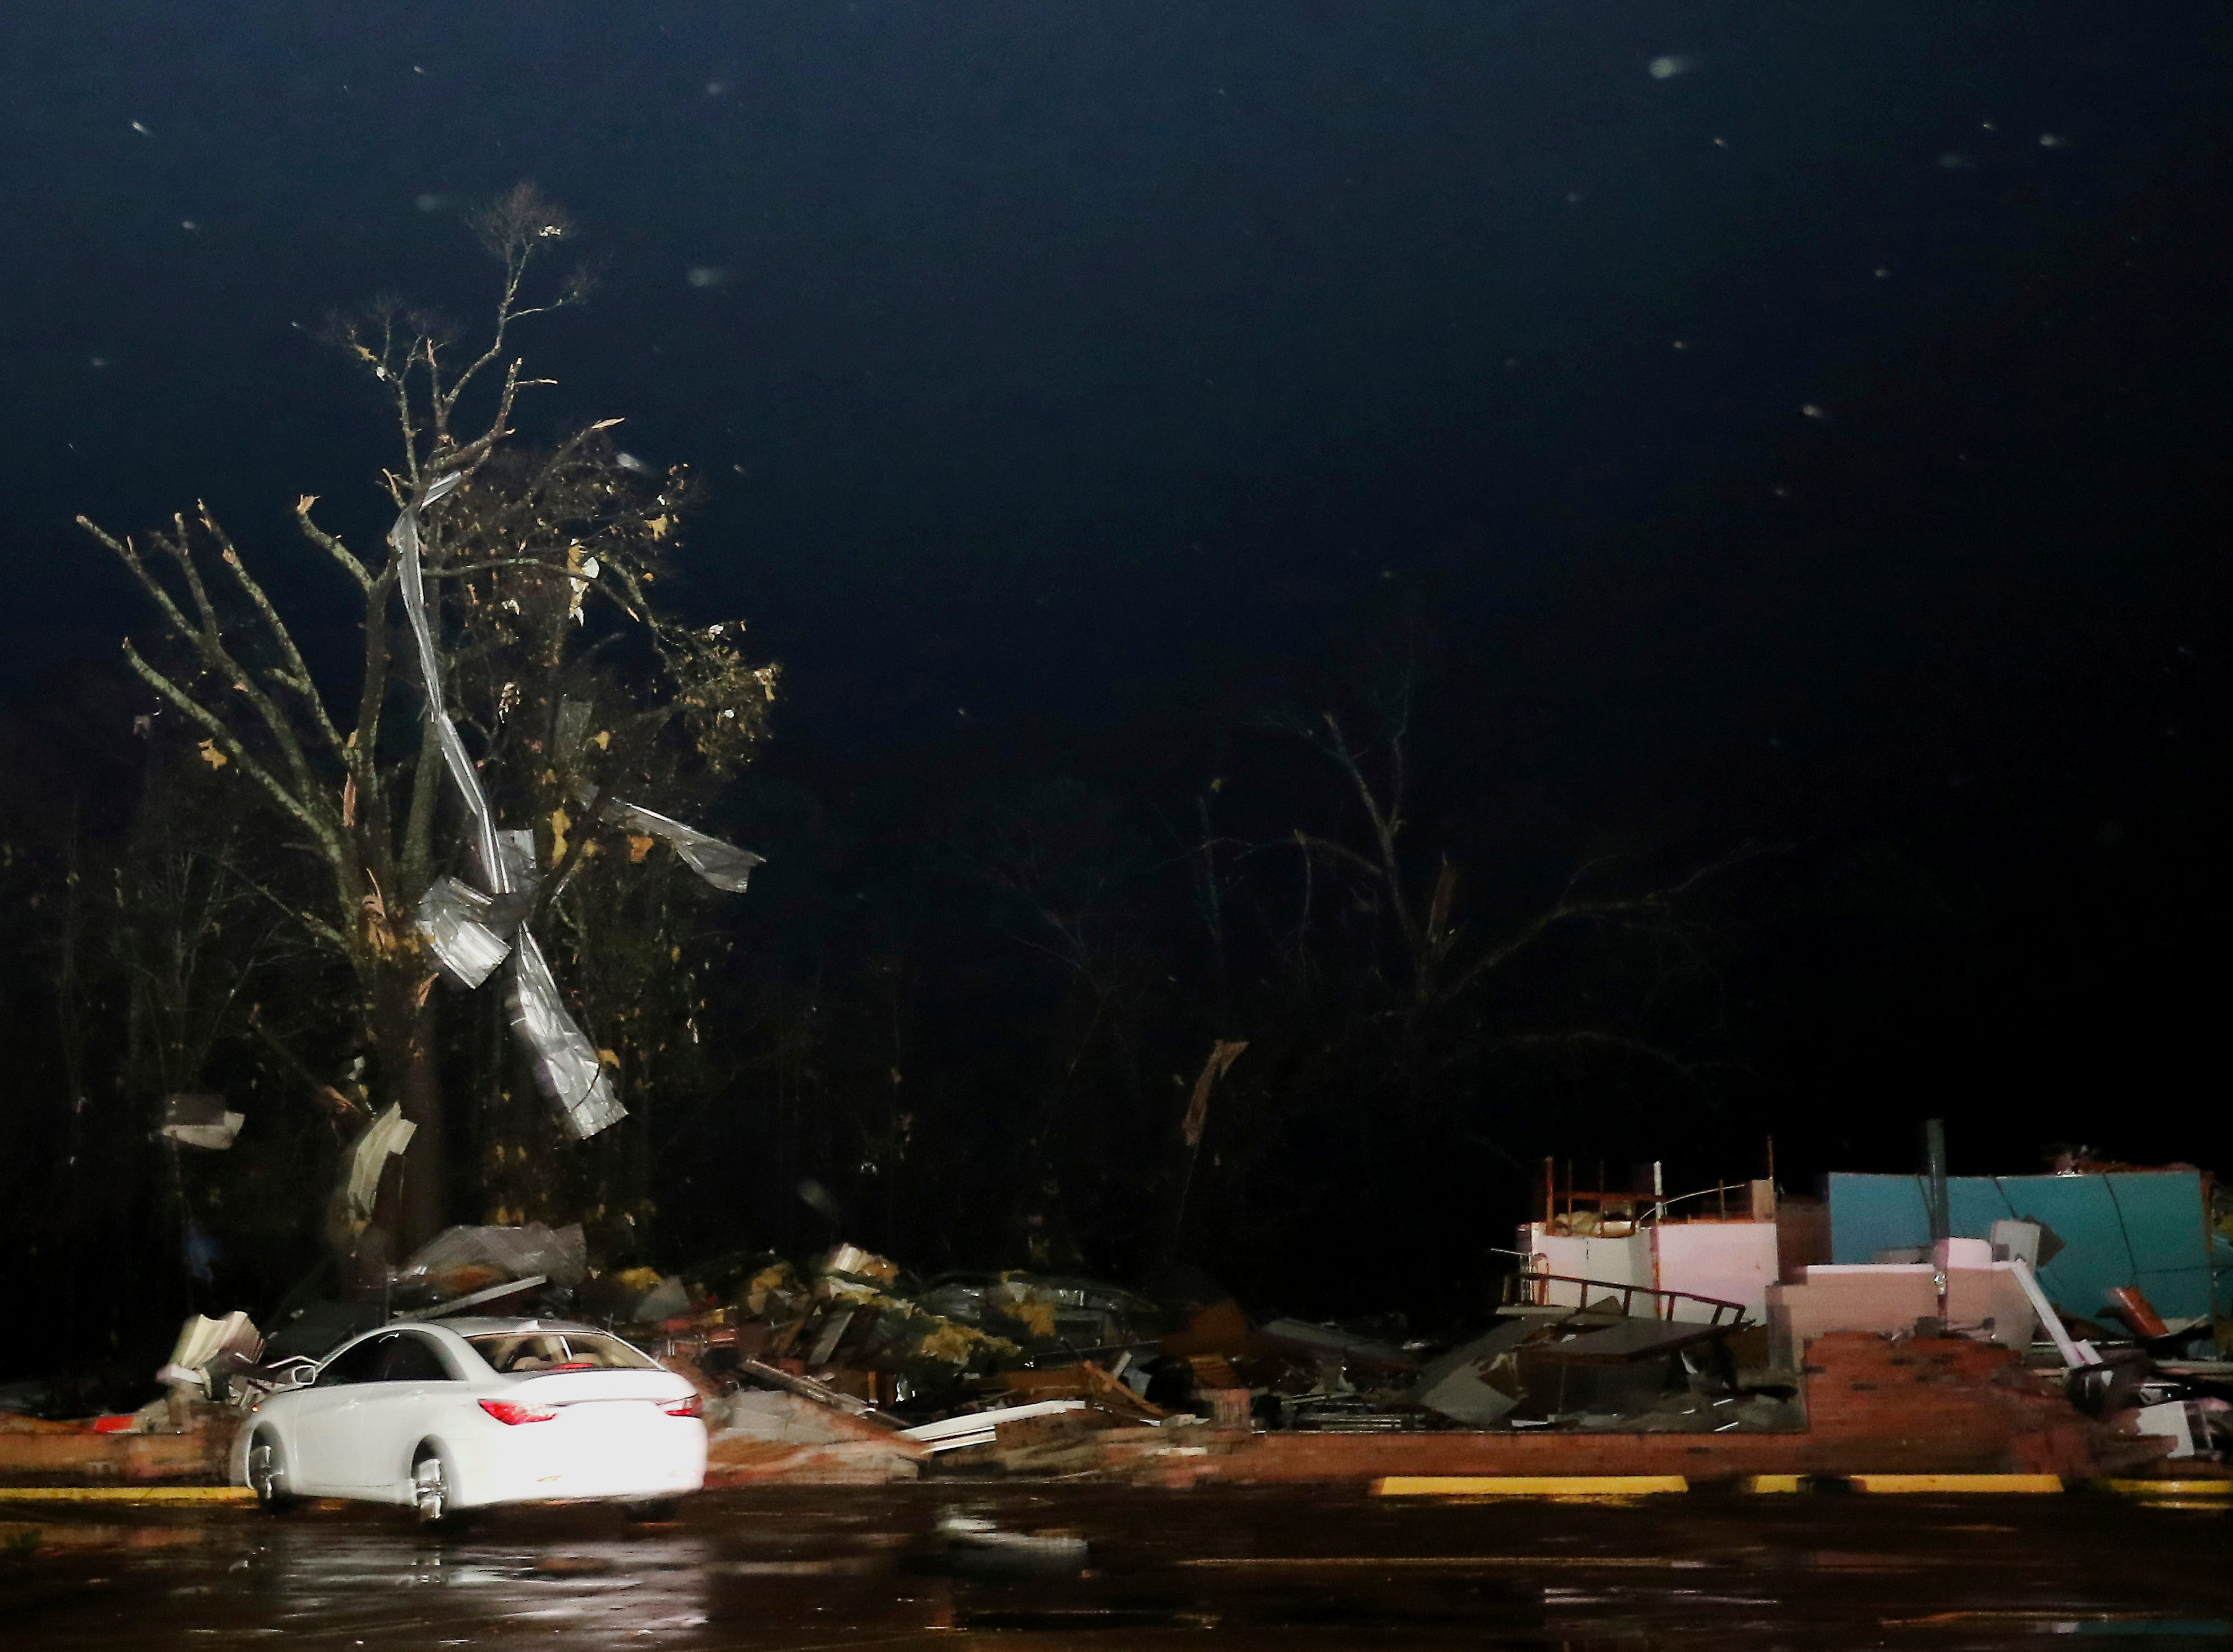 Tin from nearby buildings sits in a tree above a destroyed vacant commercial structure along highway 50 in Columbus, Miss., after a tornado struck the area on Saturday, Feb. 23, 2019. (AP Photo/Jim Lytle)